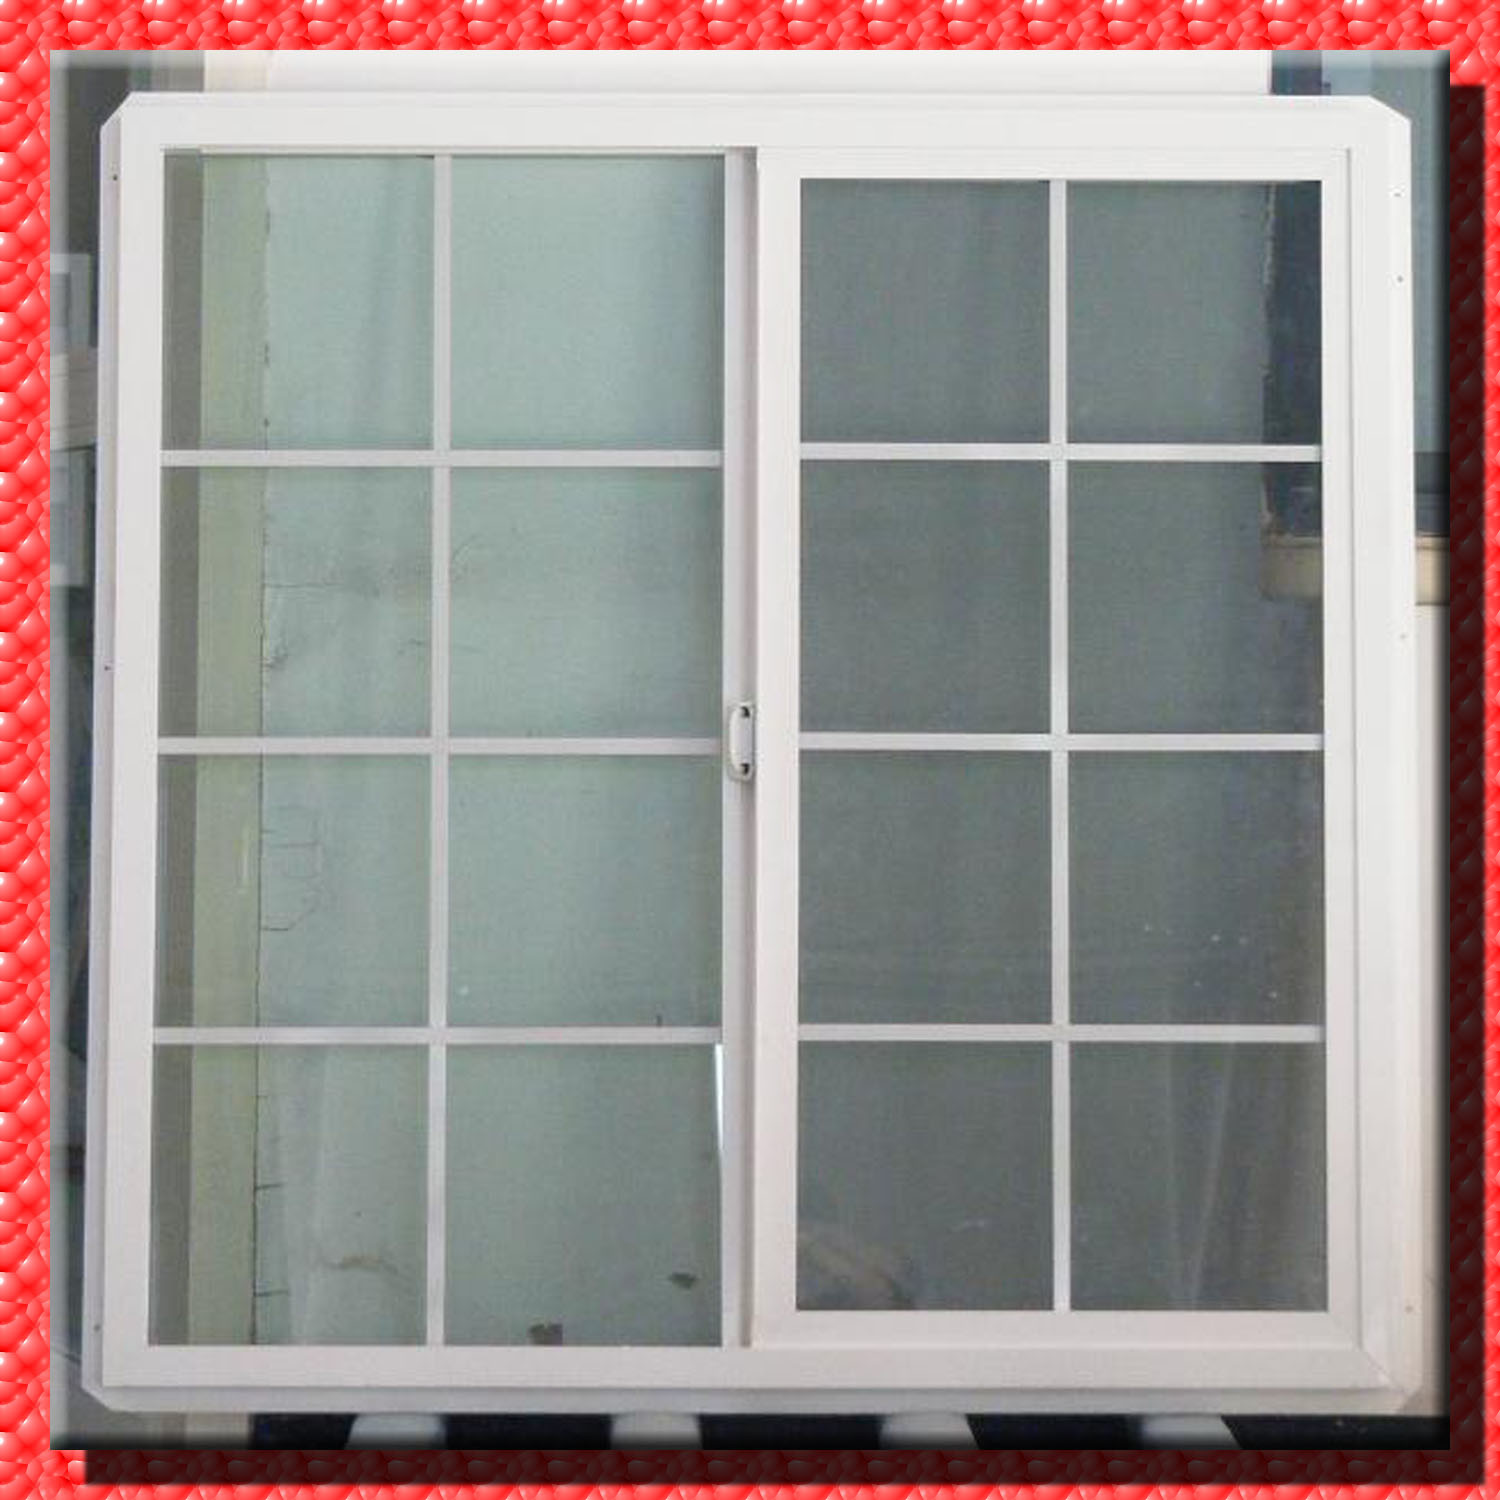 Insert window grills from home depot joy studio design for What are the best vinyl windows